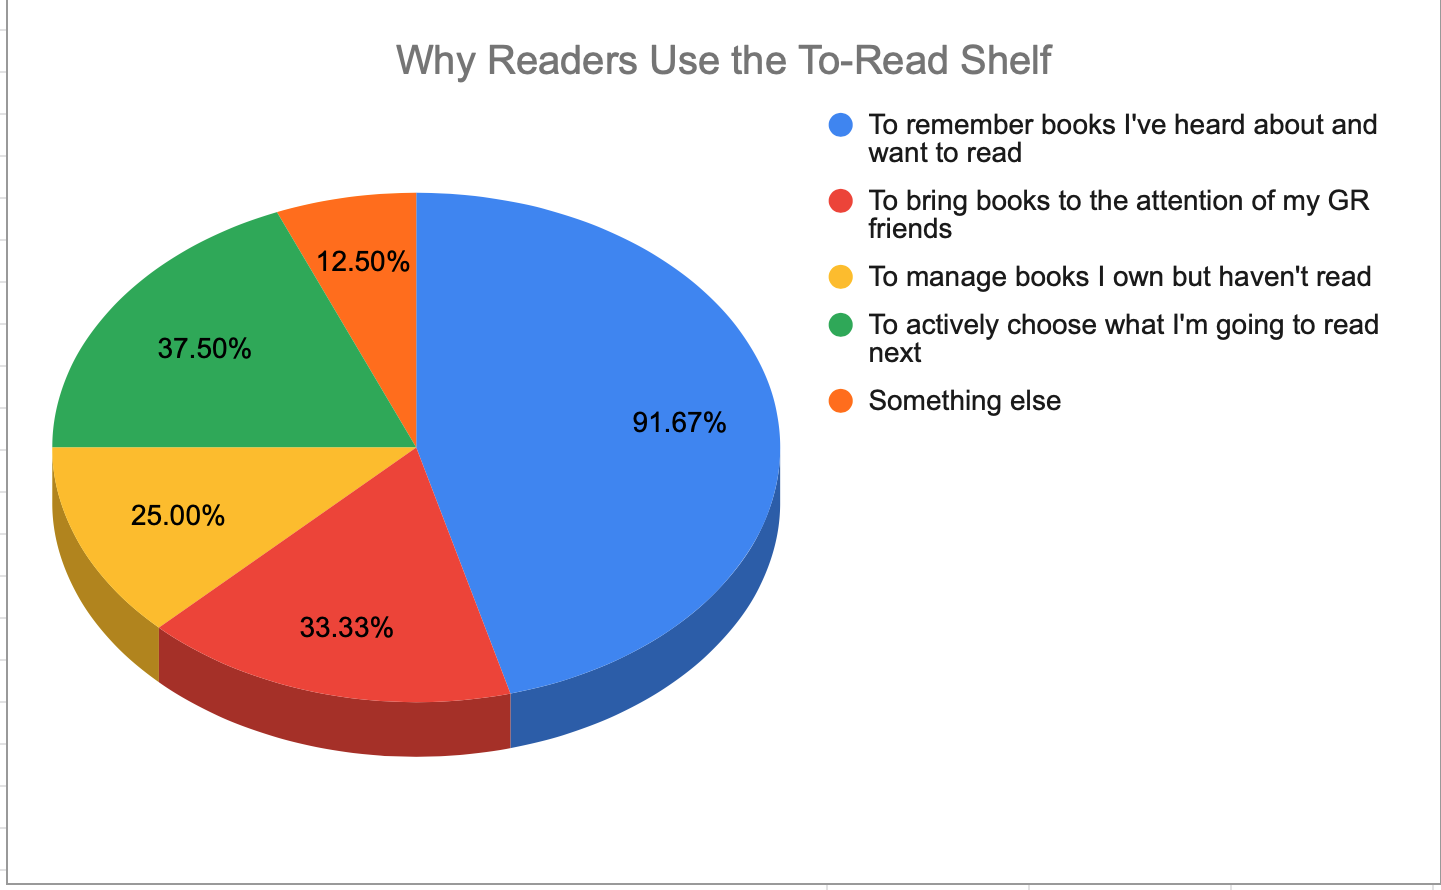 Chart showing why readers use the to-read shelf on Goodreads